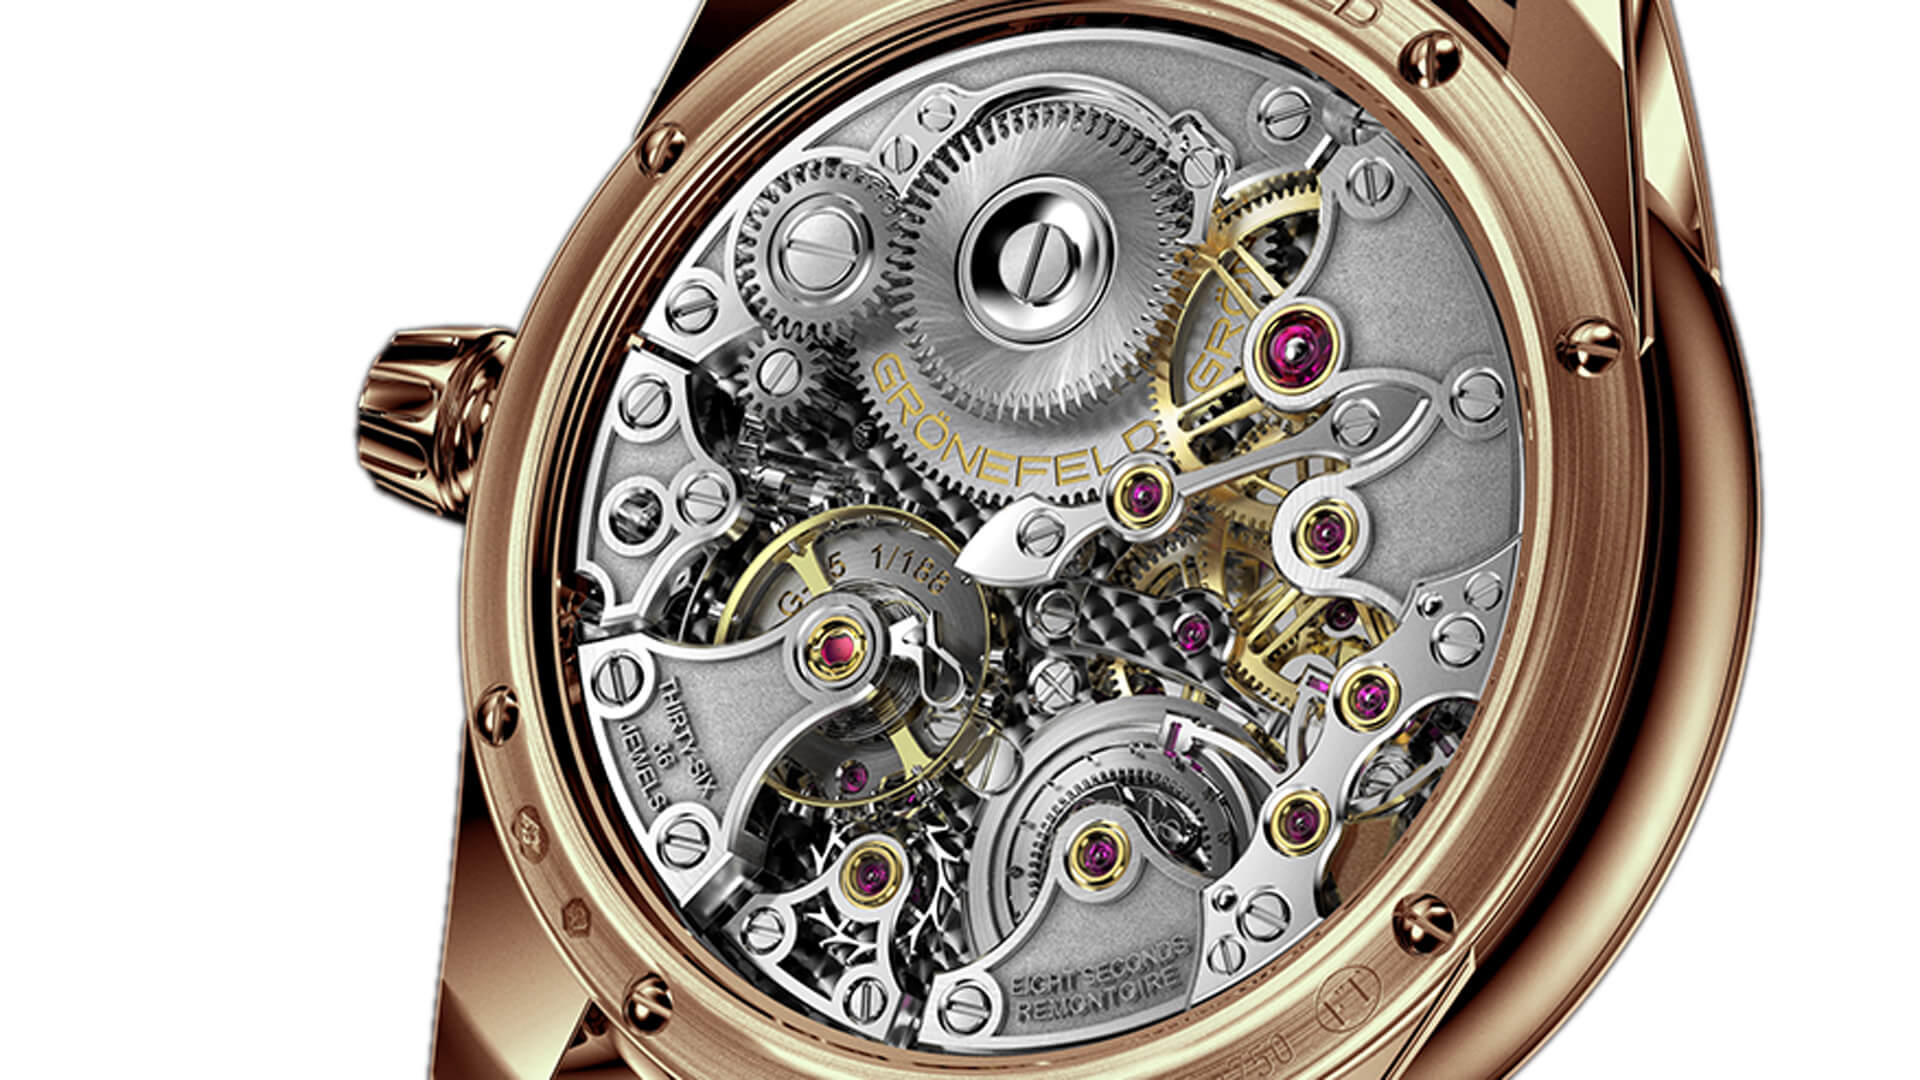 Gronefeld_1941_Remontoire_Red_Gold_movement4 - ESCAPEMENT magazine - reviews of fine watches